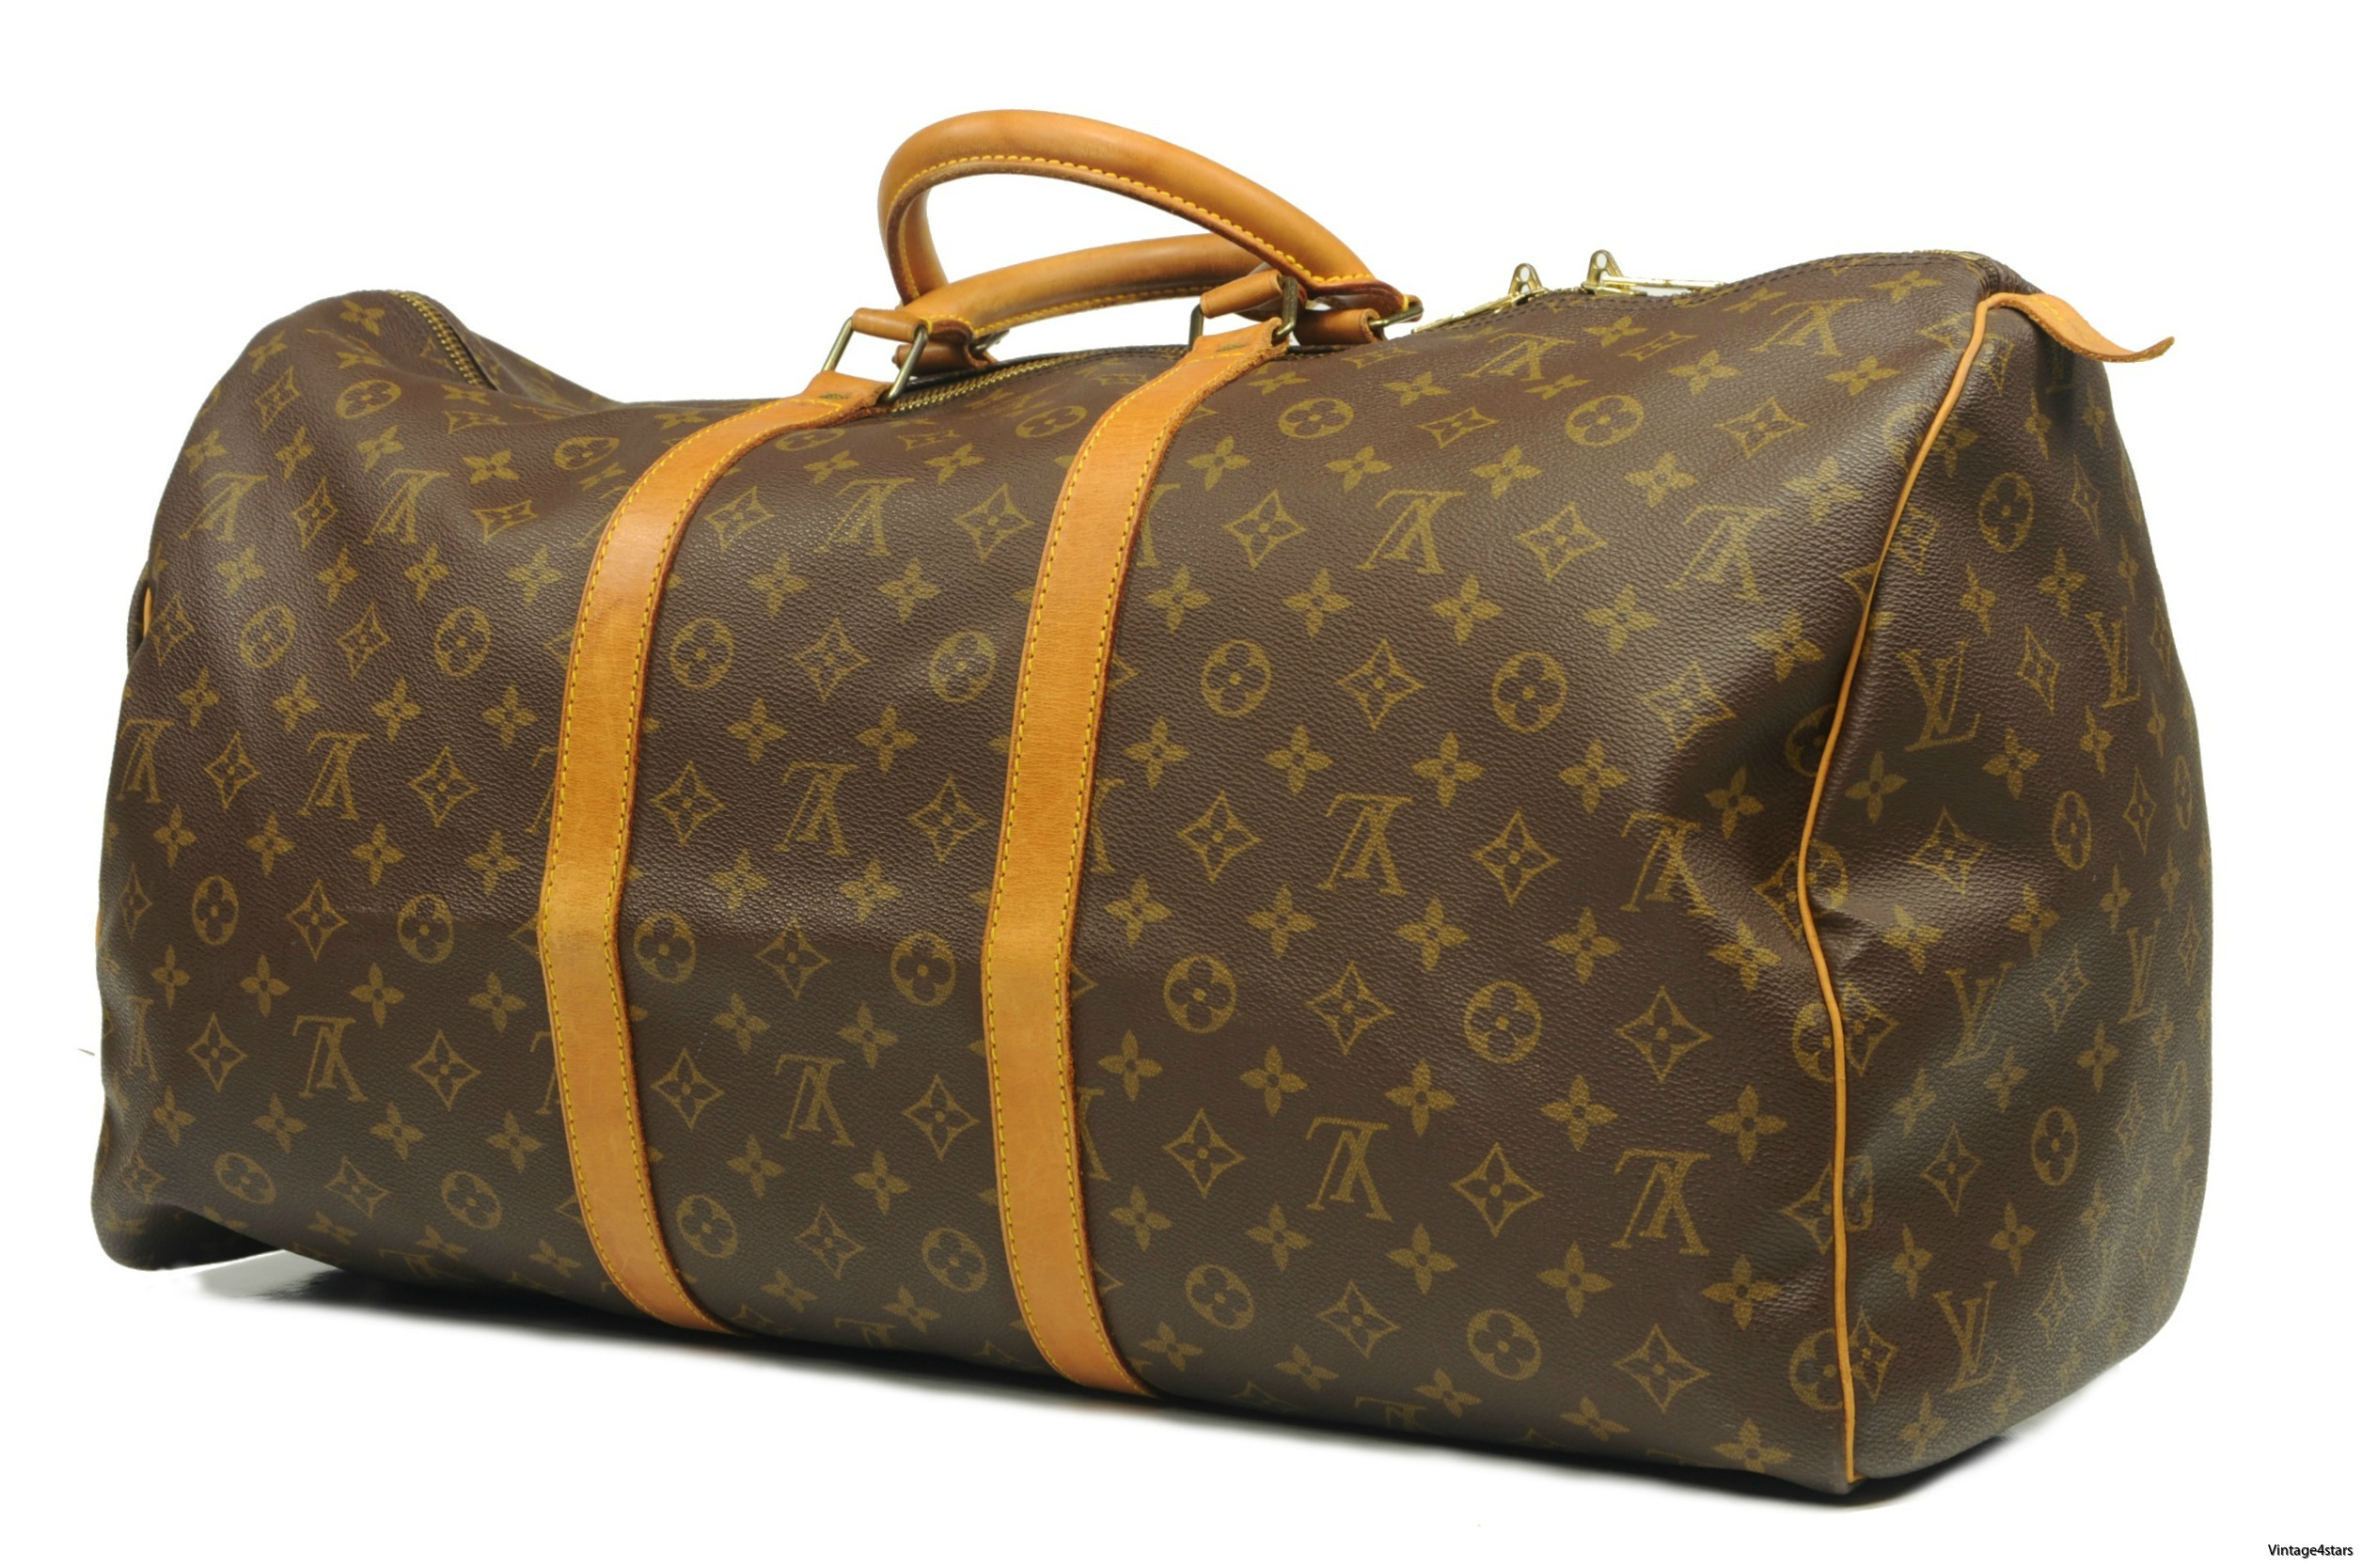 Louis vuitton Keepall 55 200